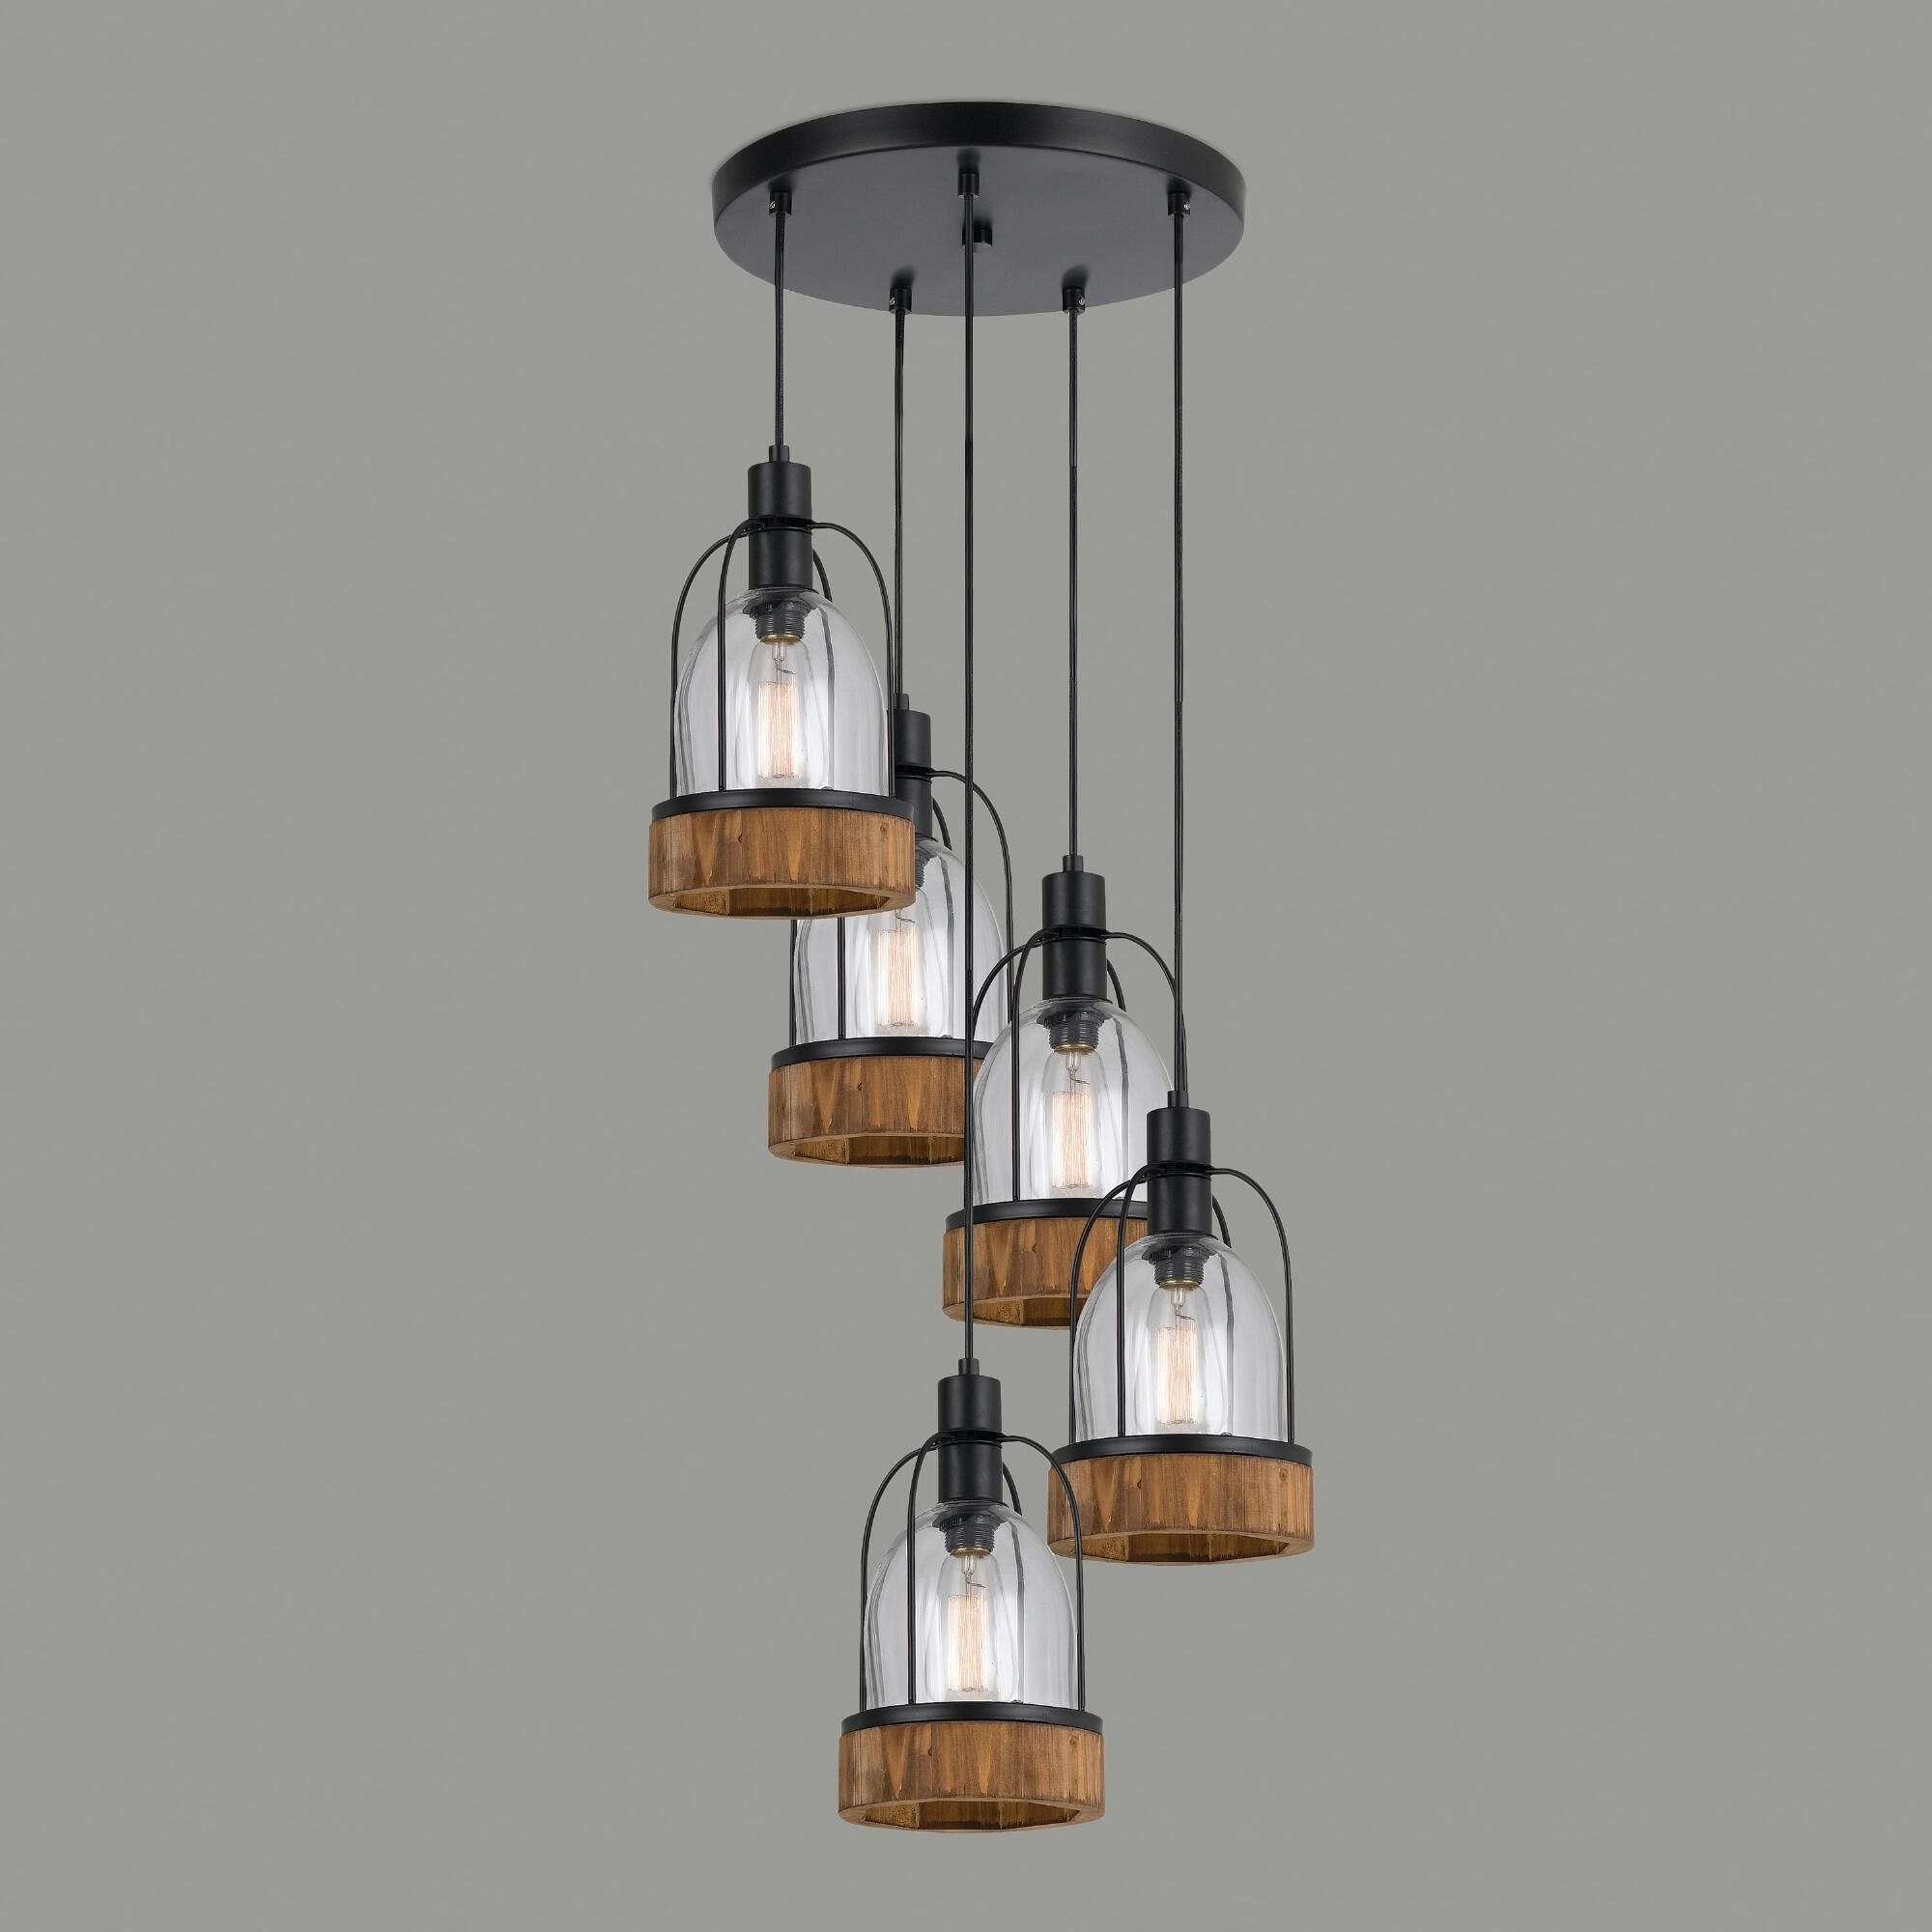 Unique Hanging Lamps featuring five bell jar-shaped lights at staggered heights with